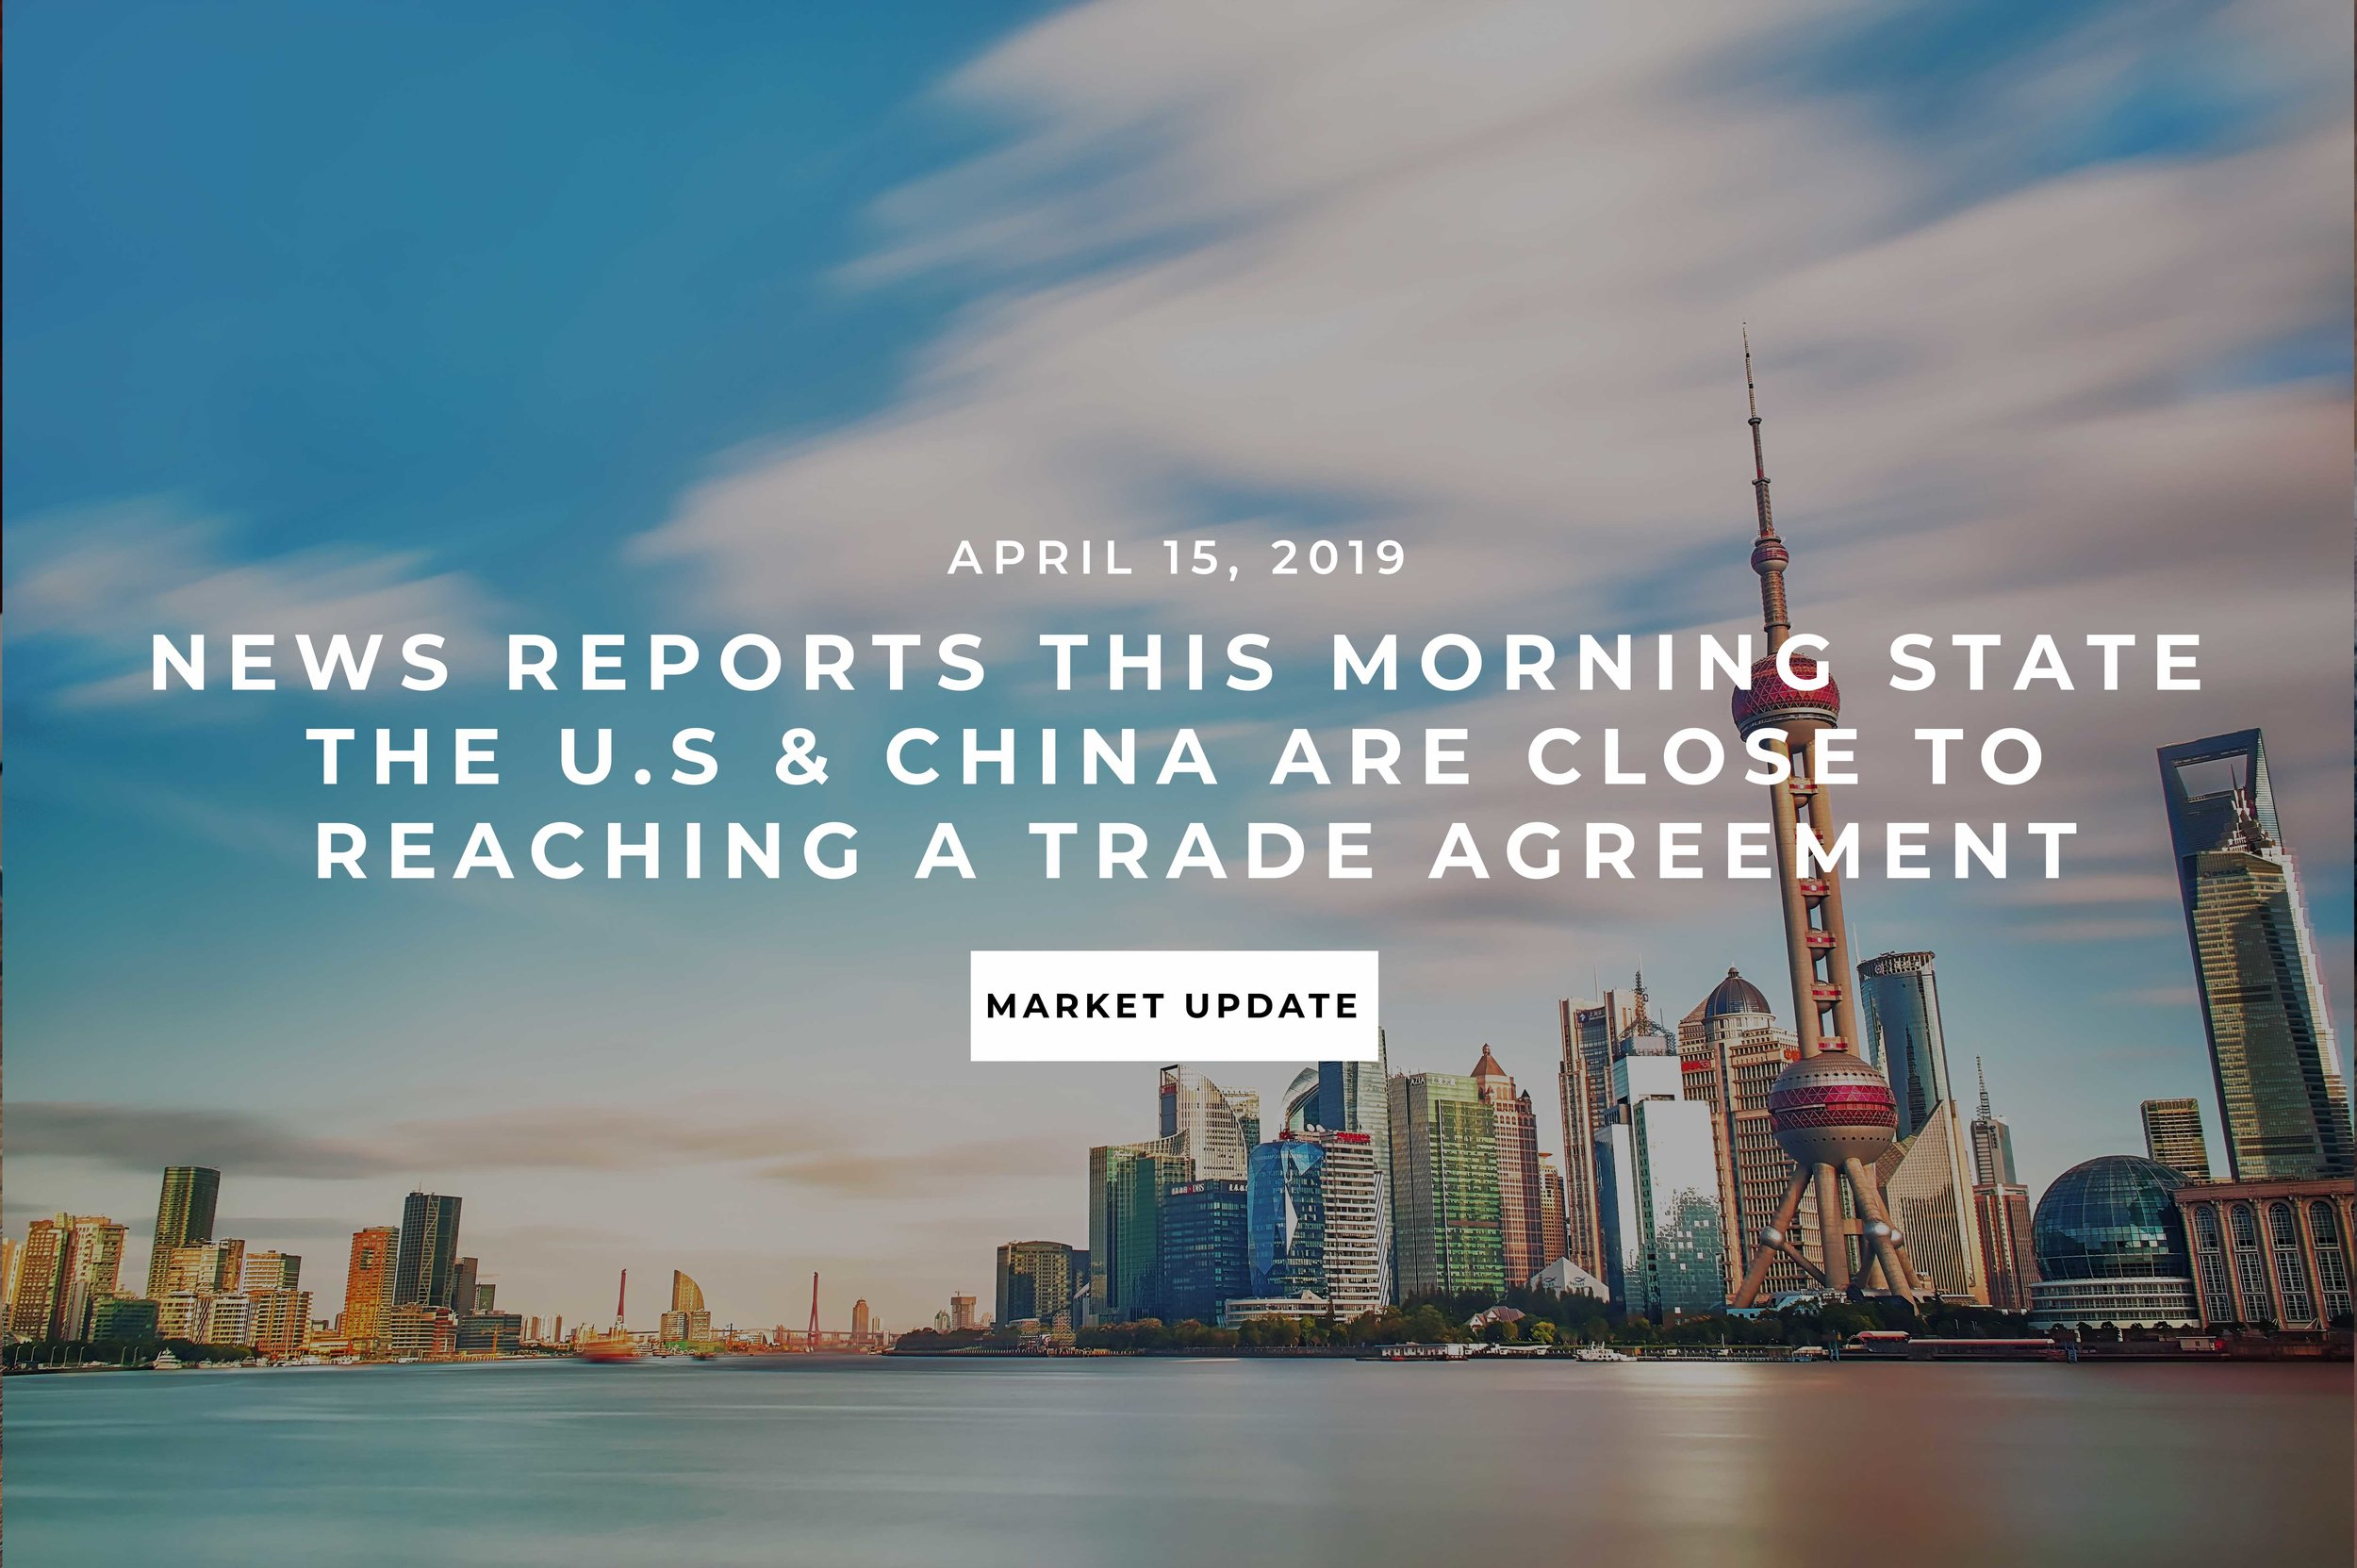 News Reports This Morning State the U.S & China Are Close to Reaching a Trade Agreement